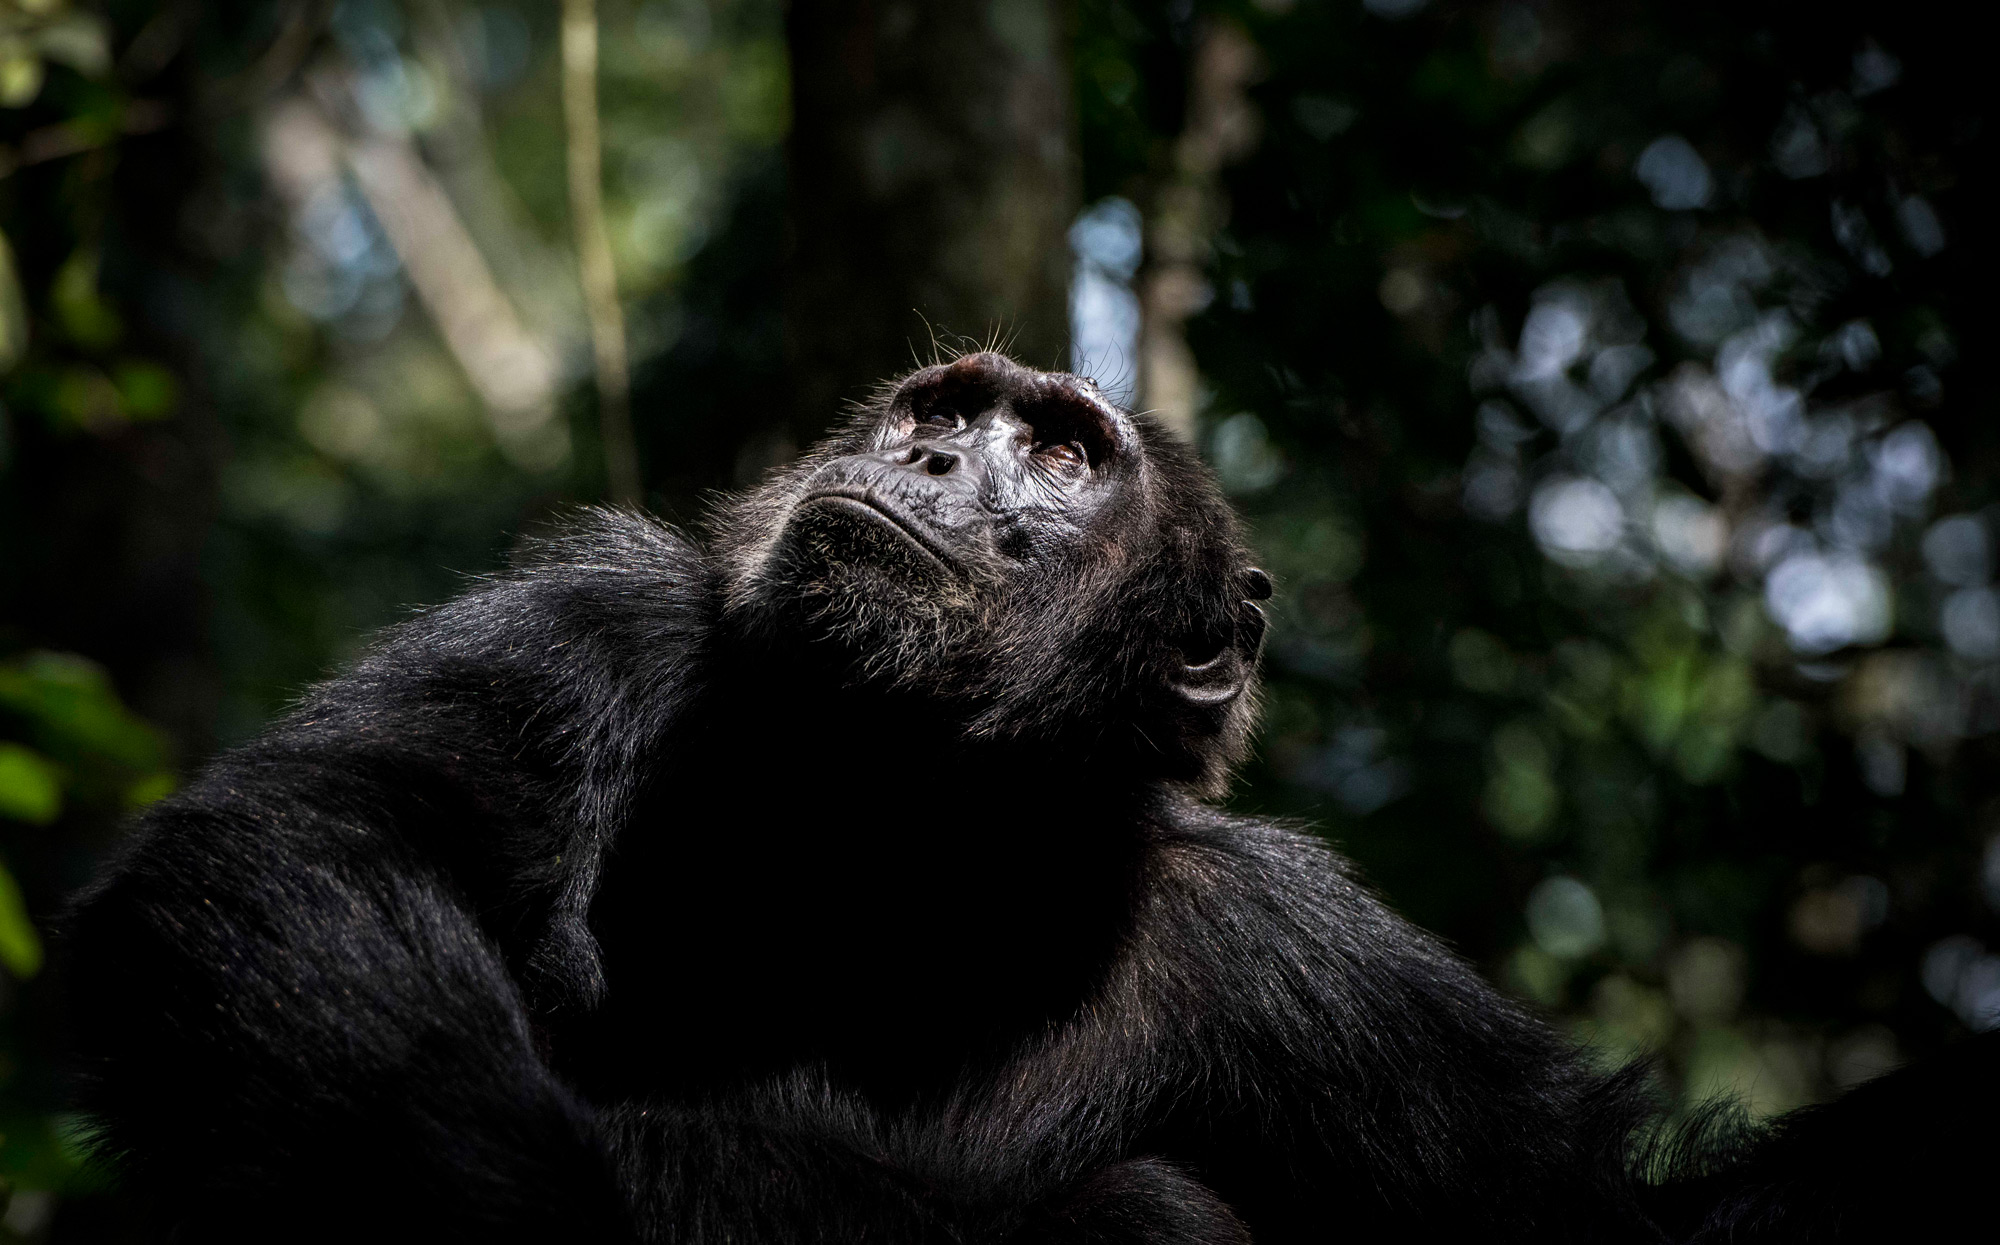 A chimpanzee gazes up into the trees in Kibale National Park, Uganda © Andrea Galli